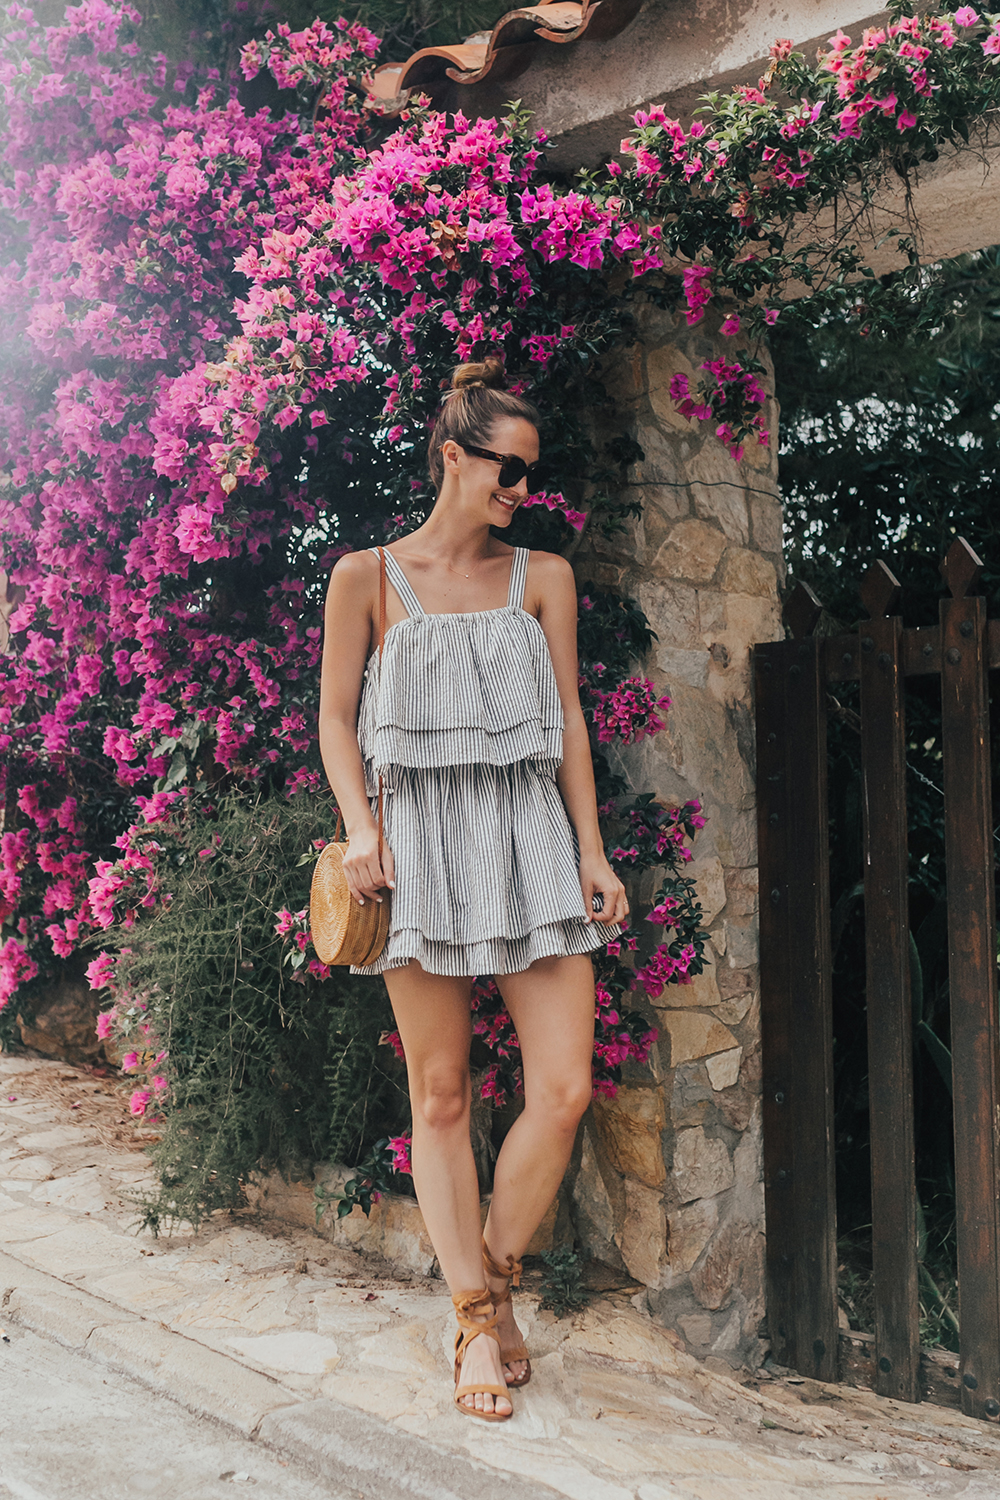 livvyland-blog-olivia-watson-travel-fashion-blogger-revolve-tularosa-striped-tiered-ruffle-dress-costa-brava-barcelona-spain-1